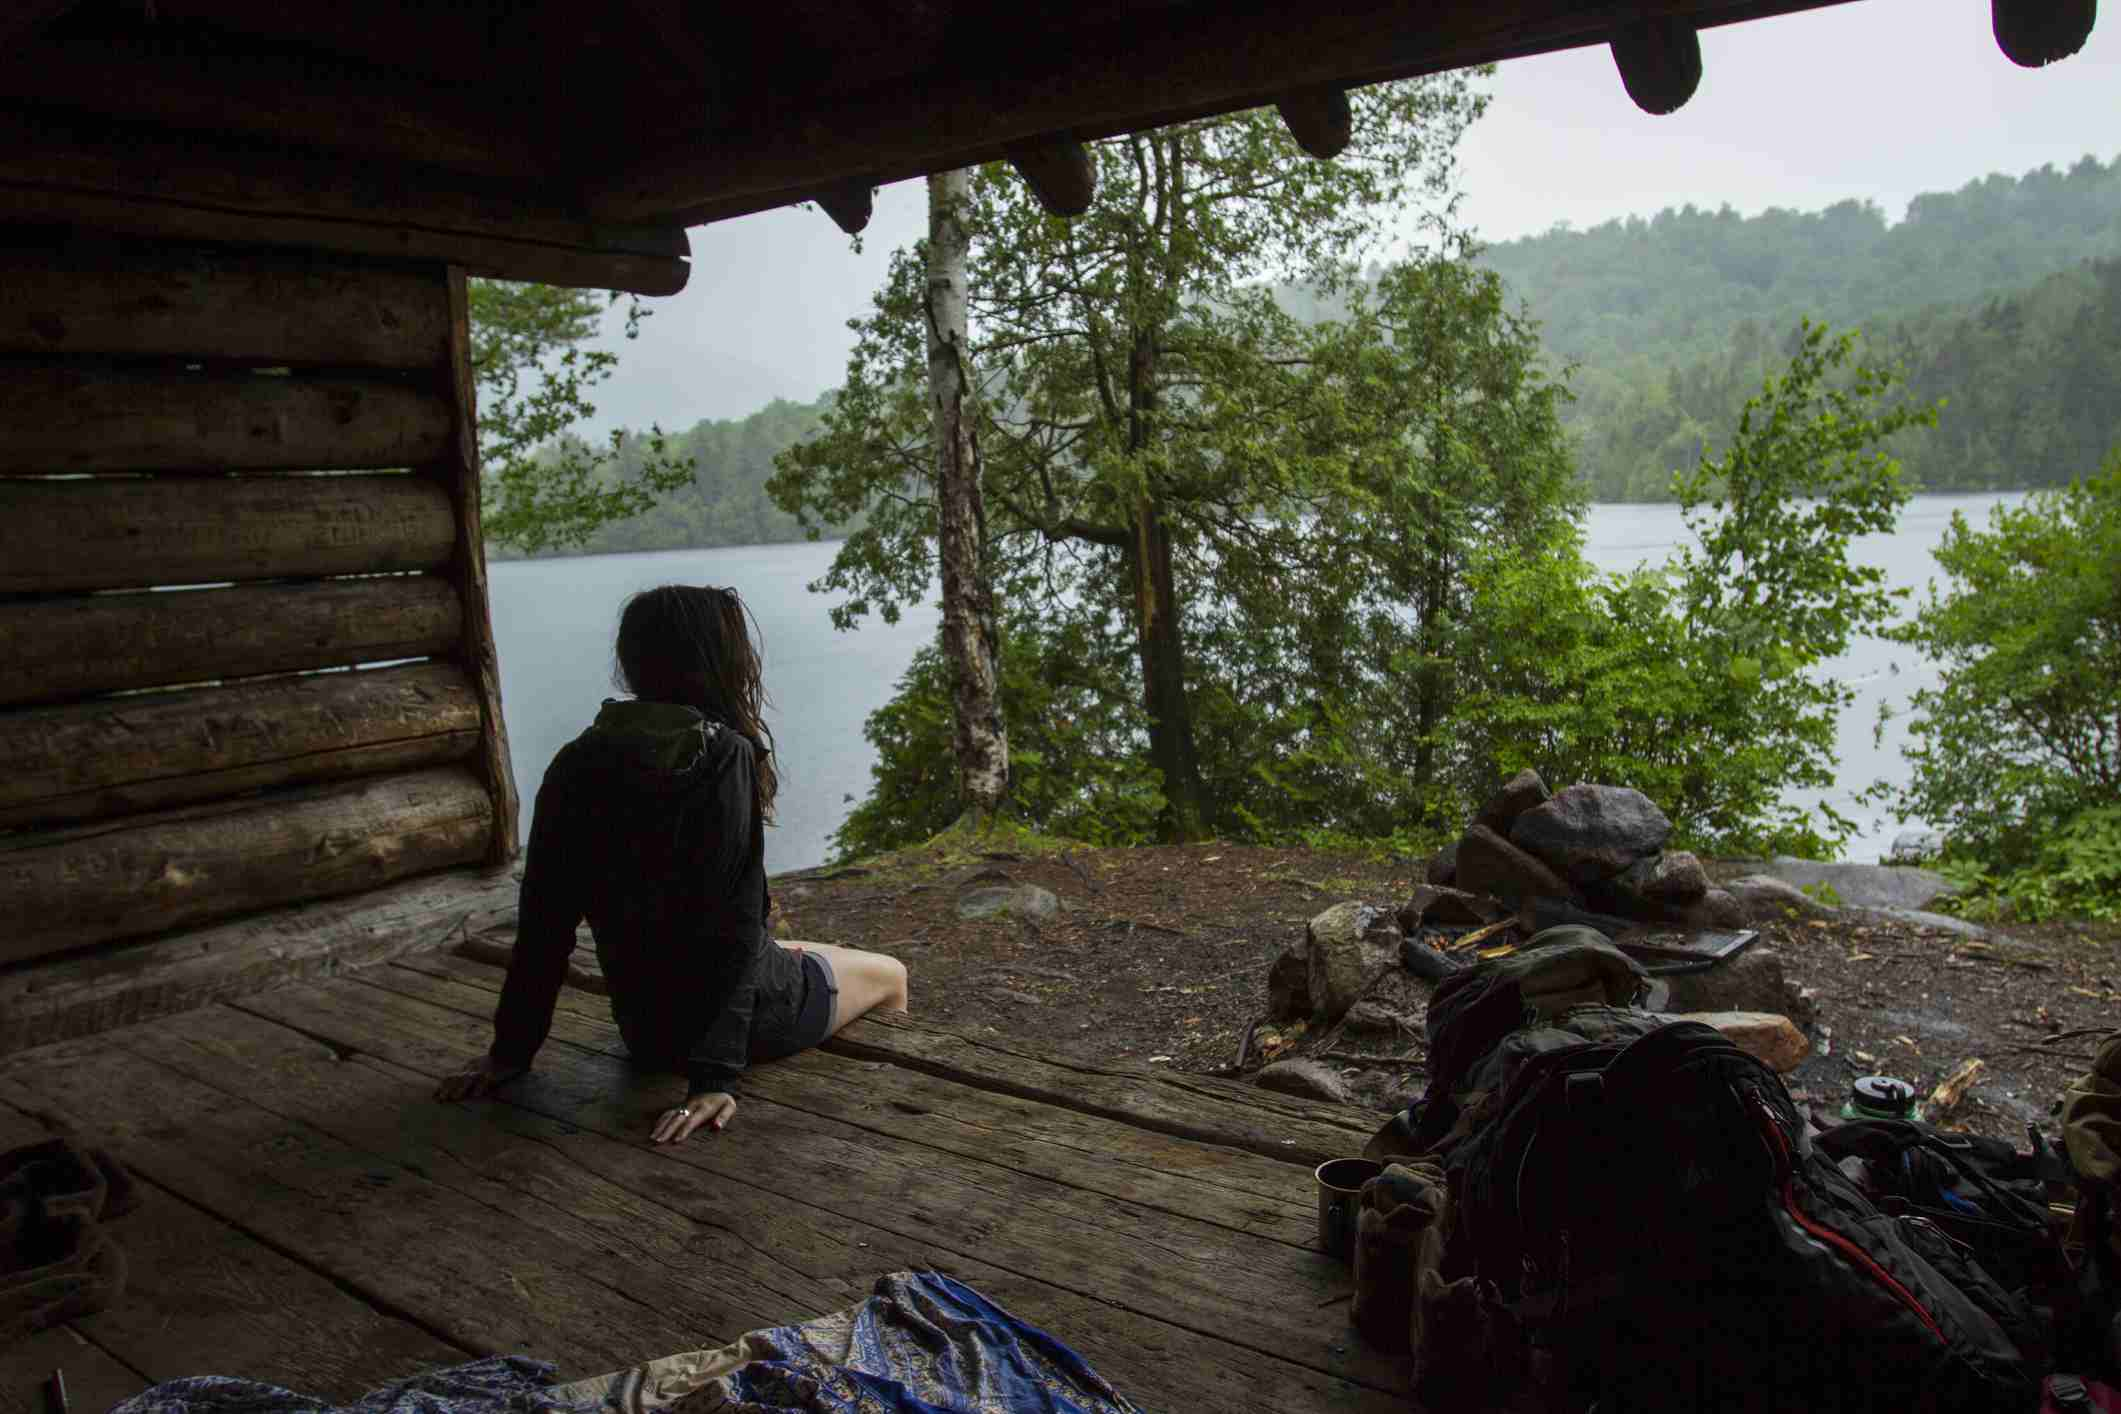 Woman camping in the Adirondack Mountains